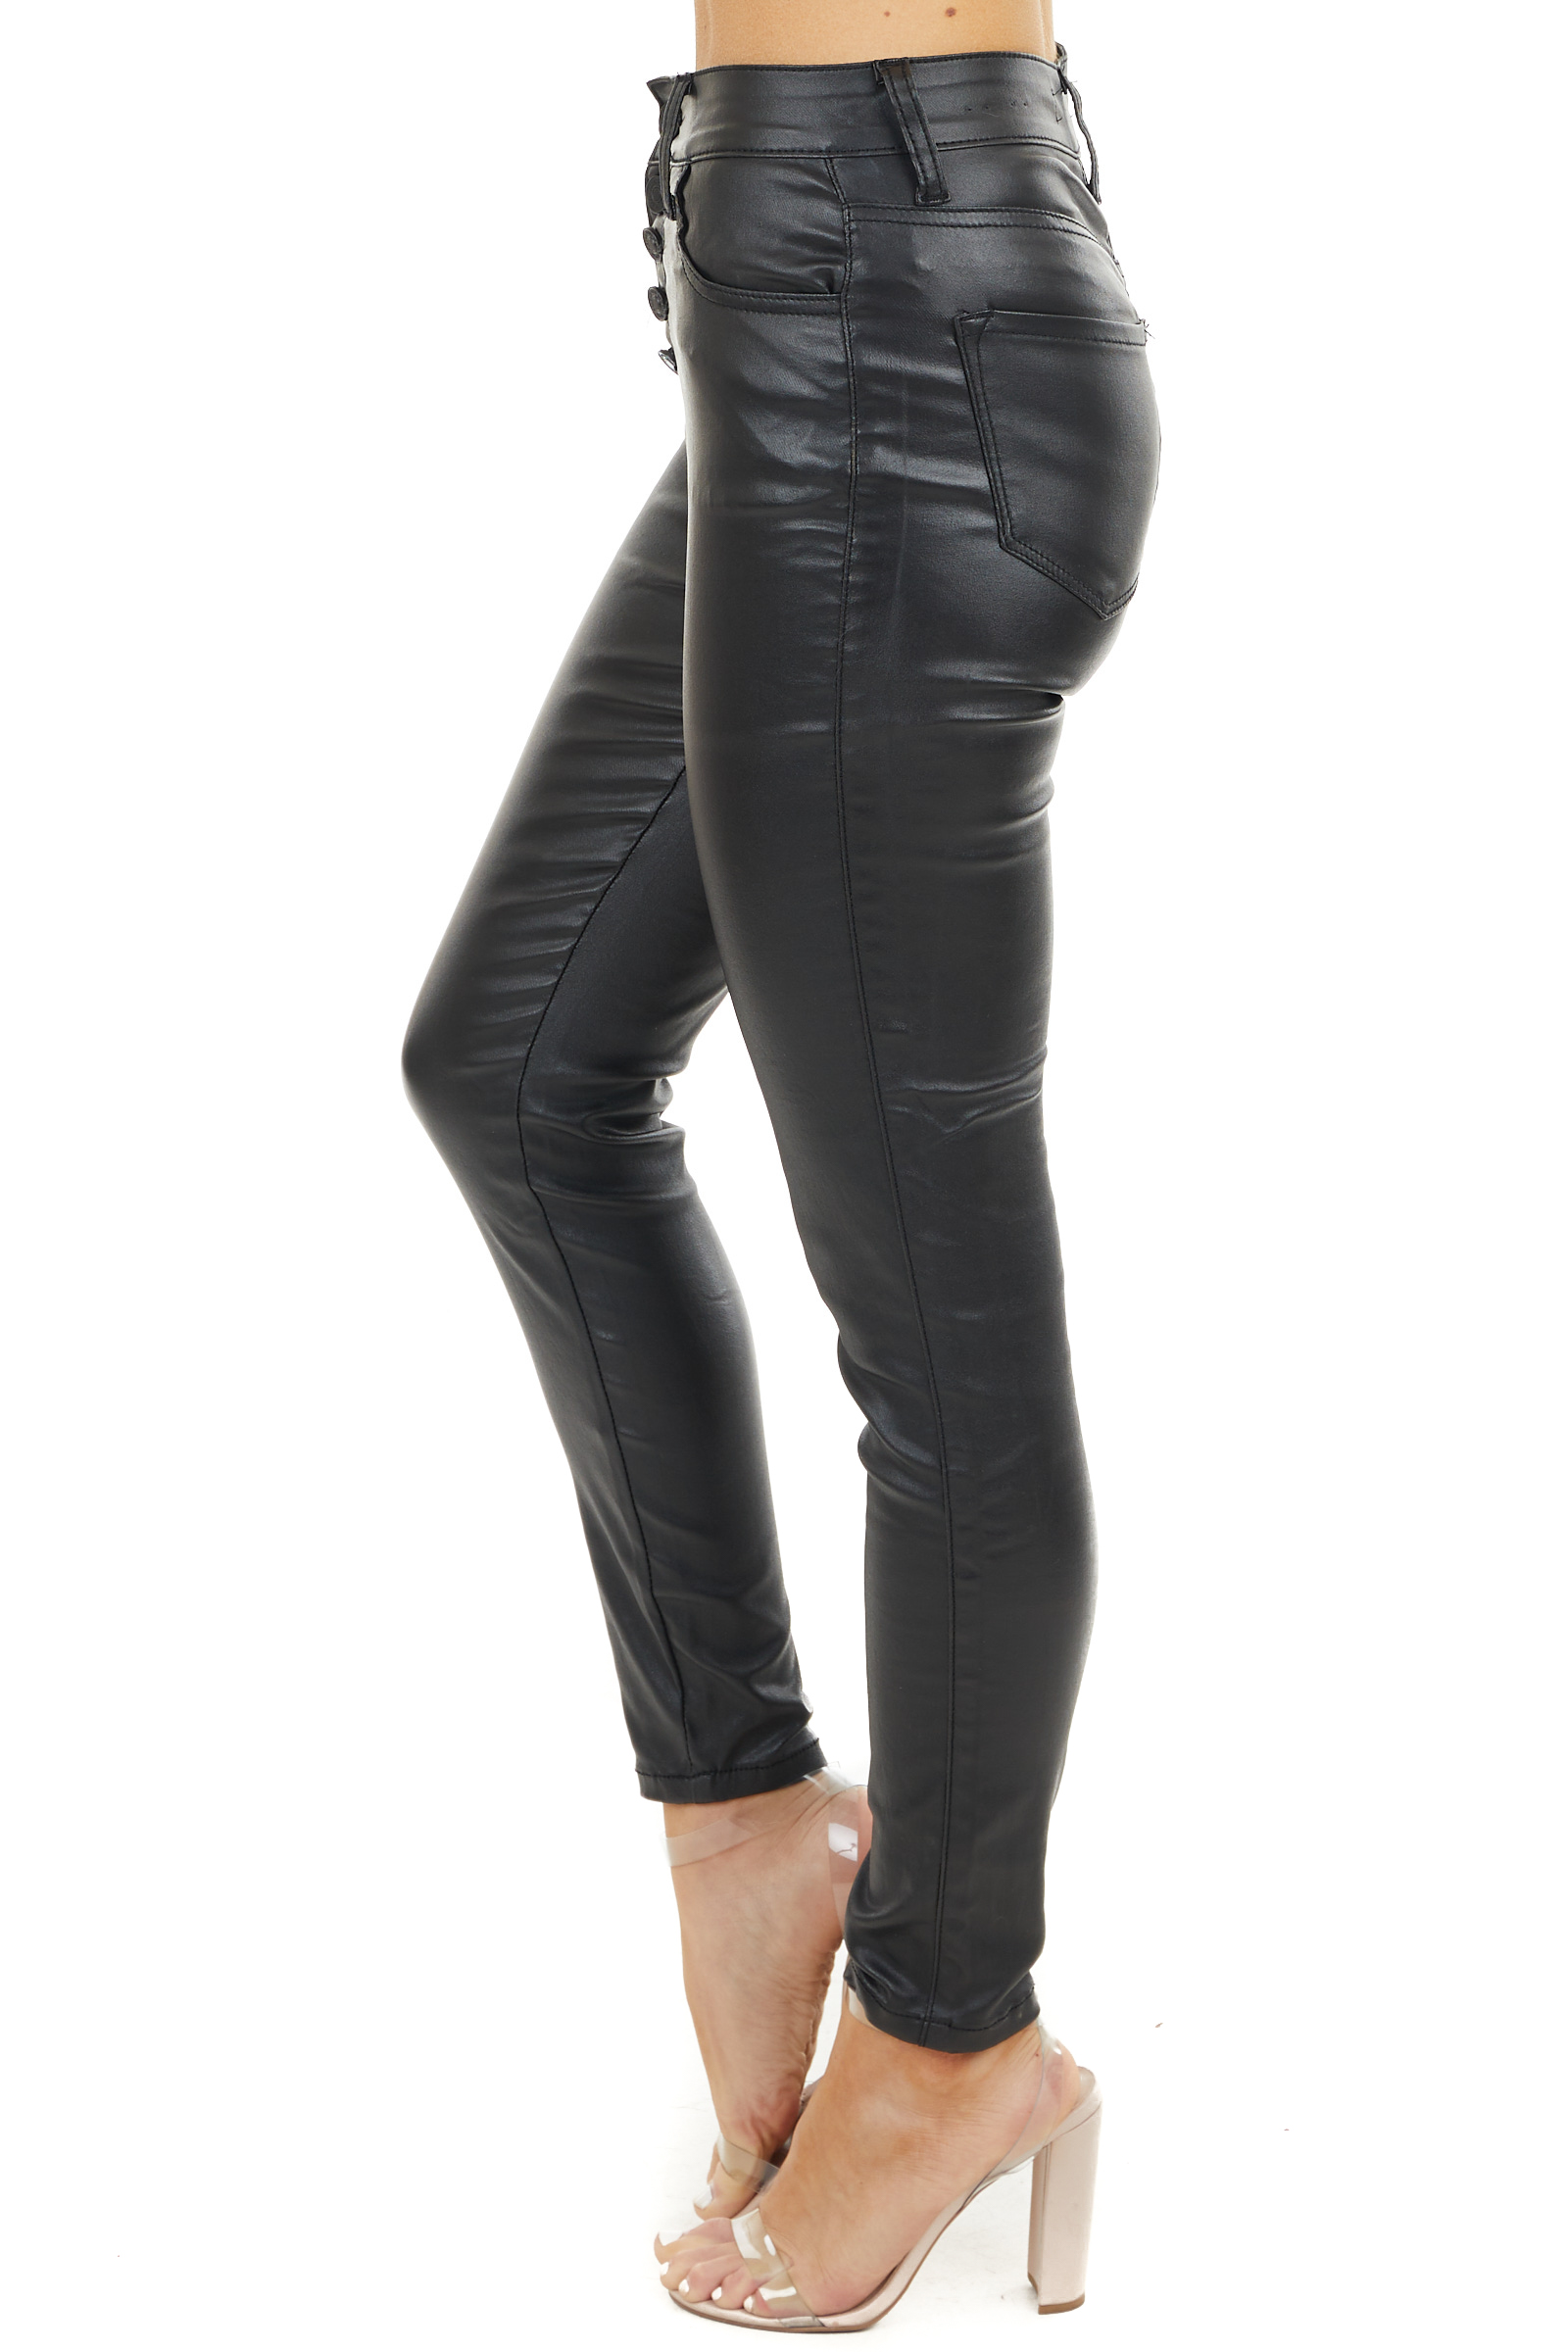 Black Faux Leather High Rise Jeans with Button Closure